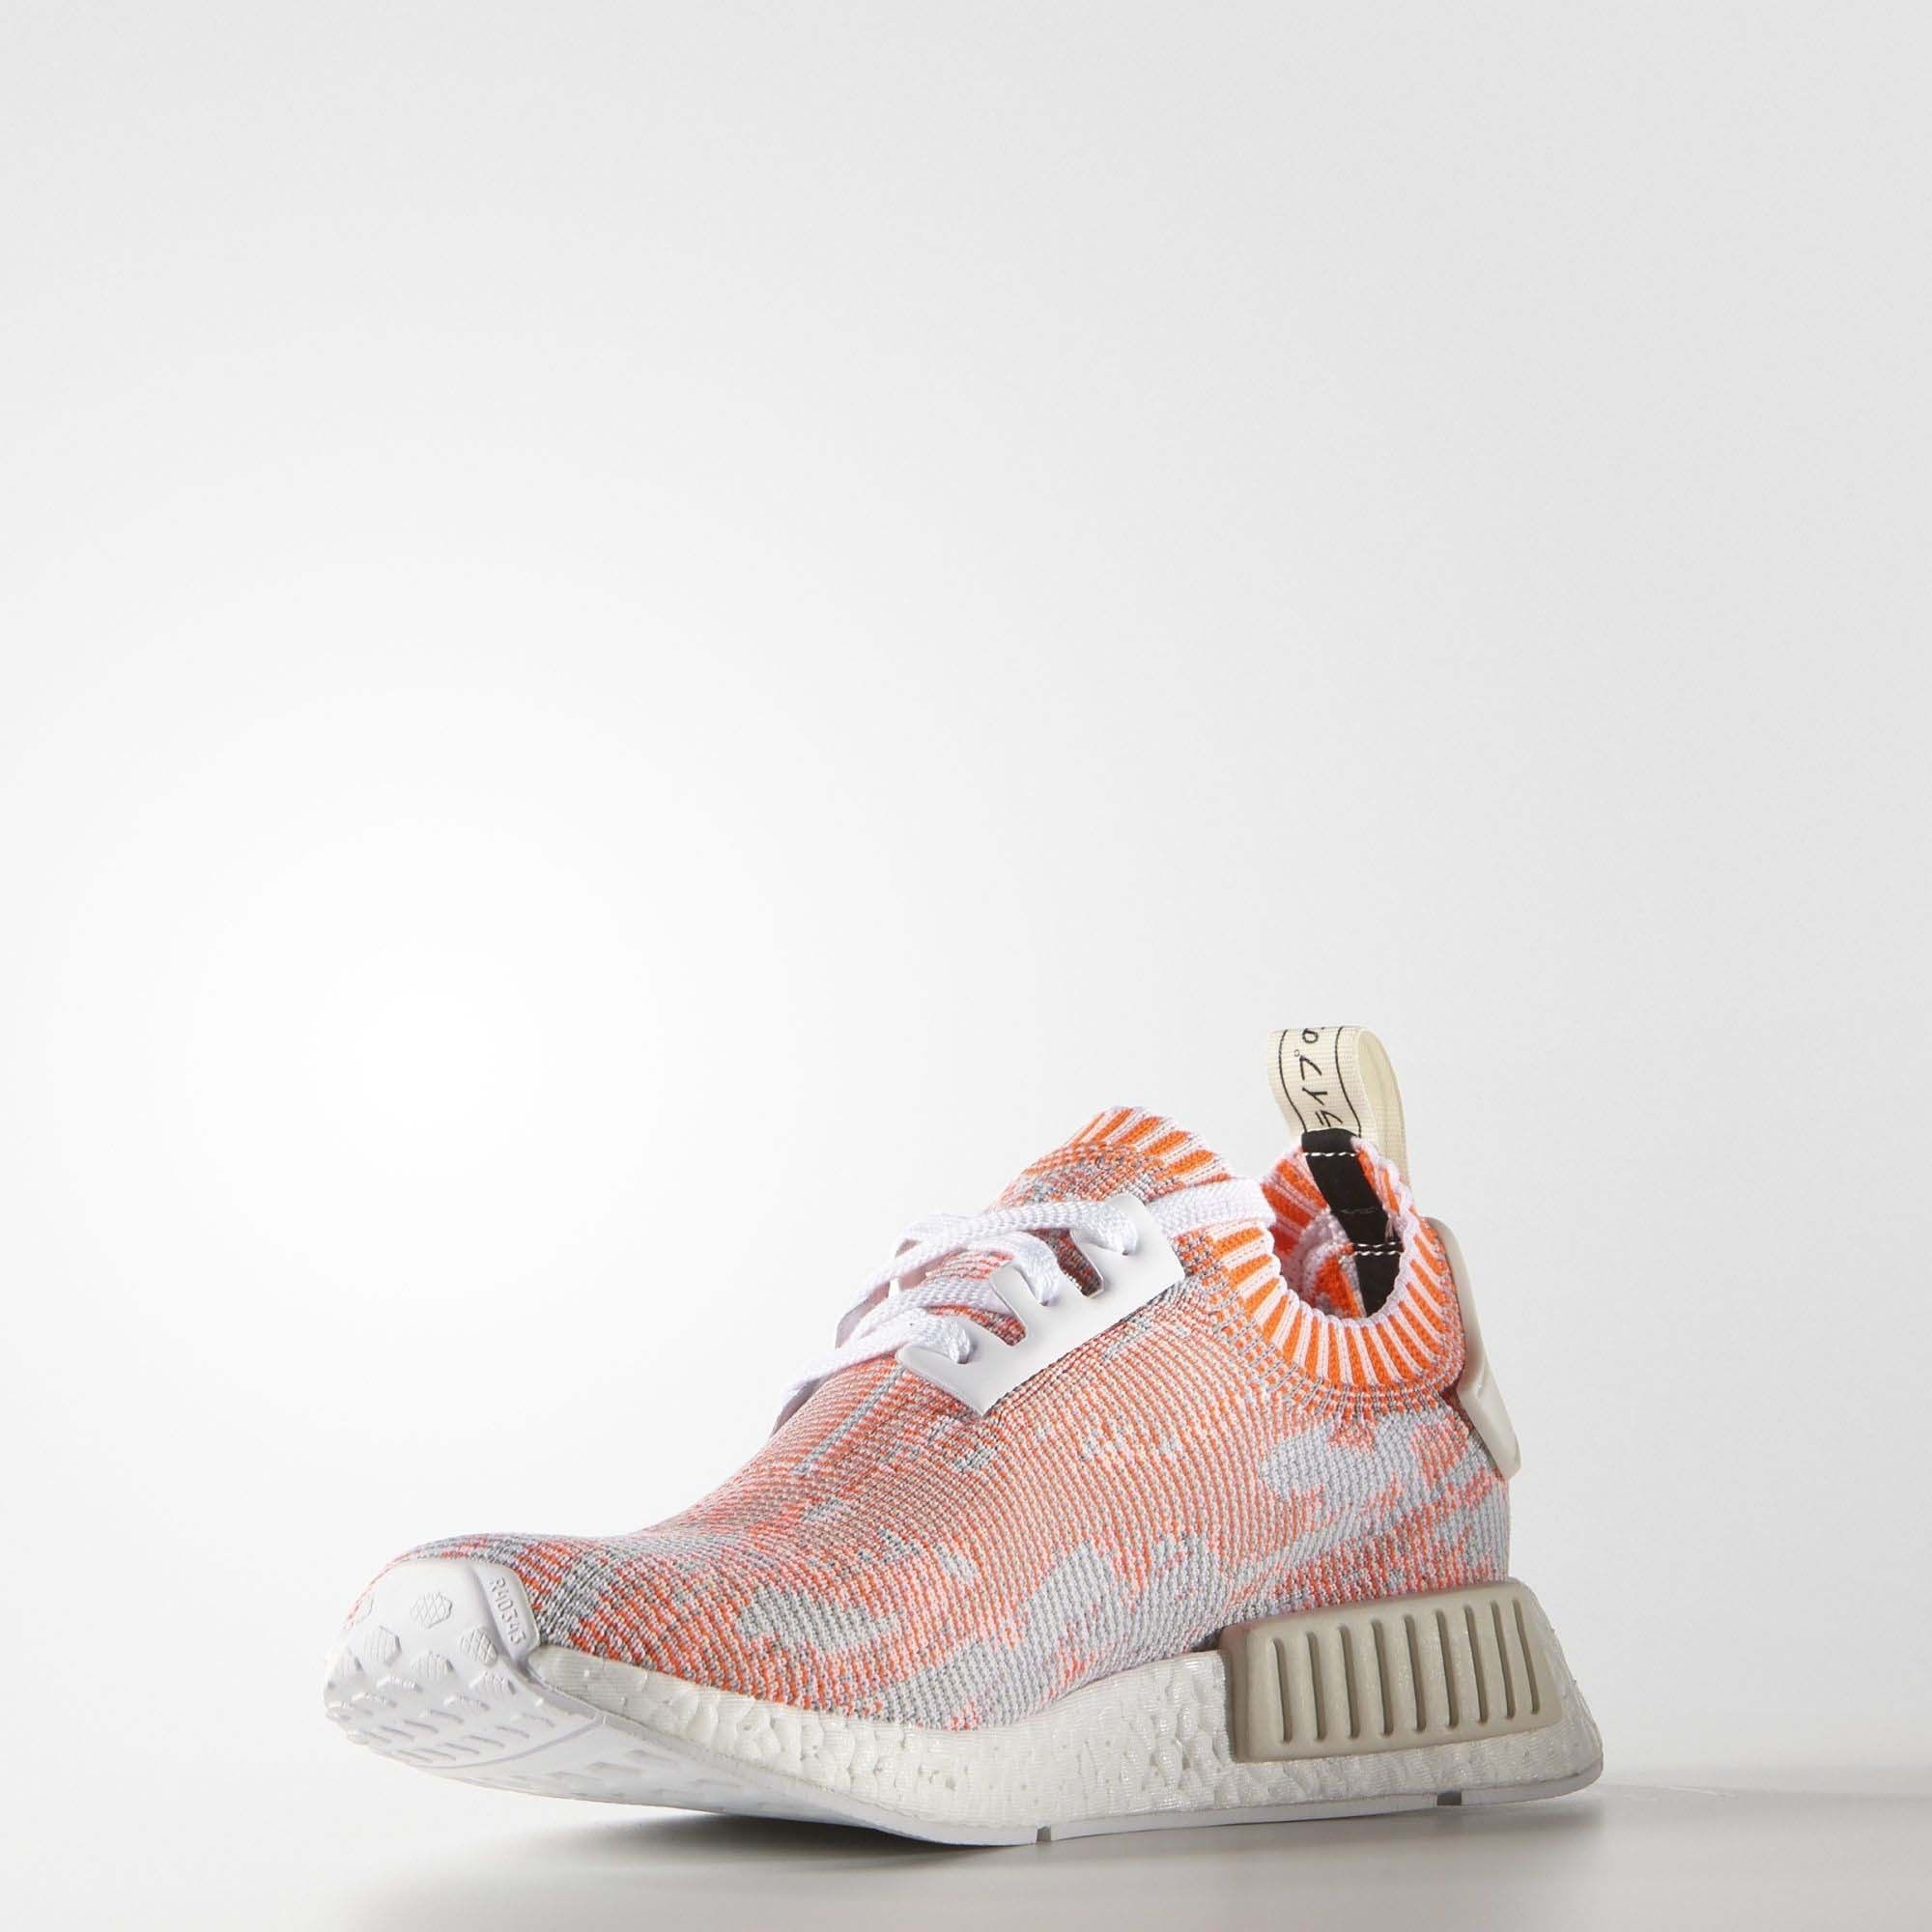 4d286fd02a36bd Adidas NMD R1 Primeknit Red Camo - Womens WhiteSolar RedOff White2 on the  lookout for limited offer